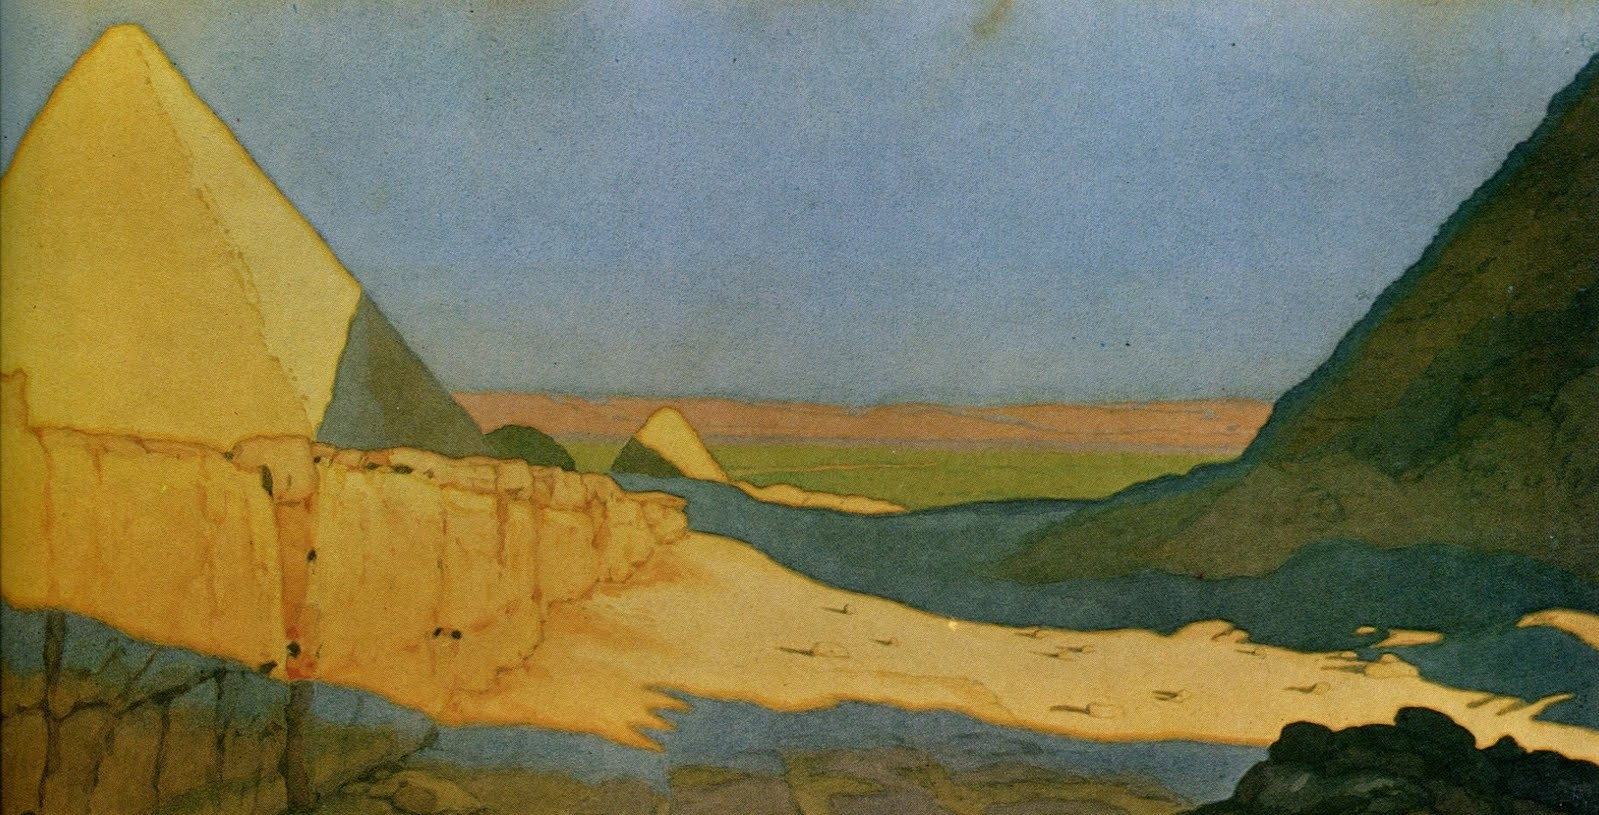 Ivan Bilibin - The Pyramids (1924)